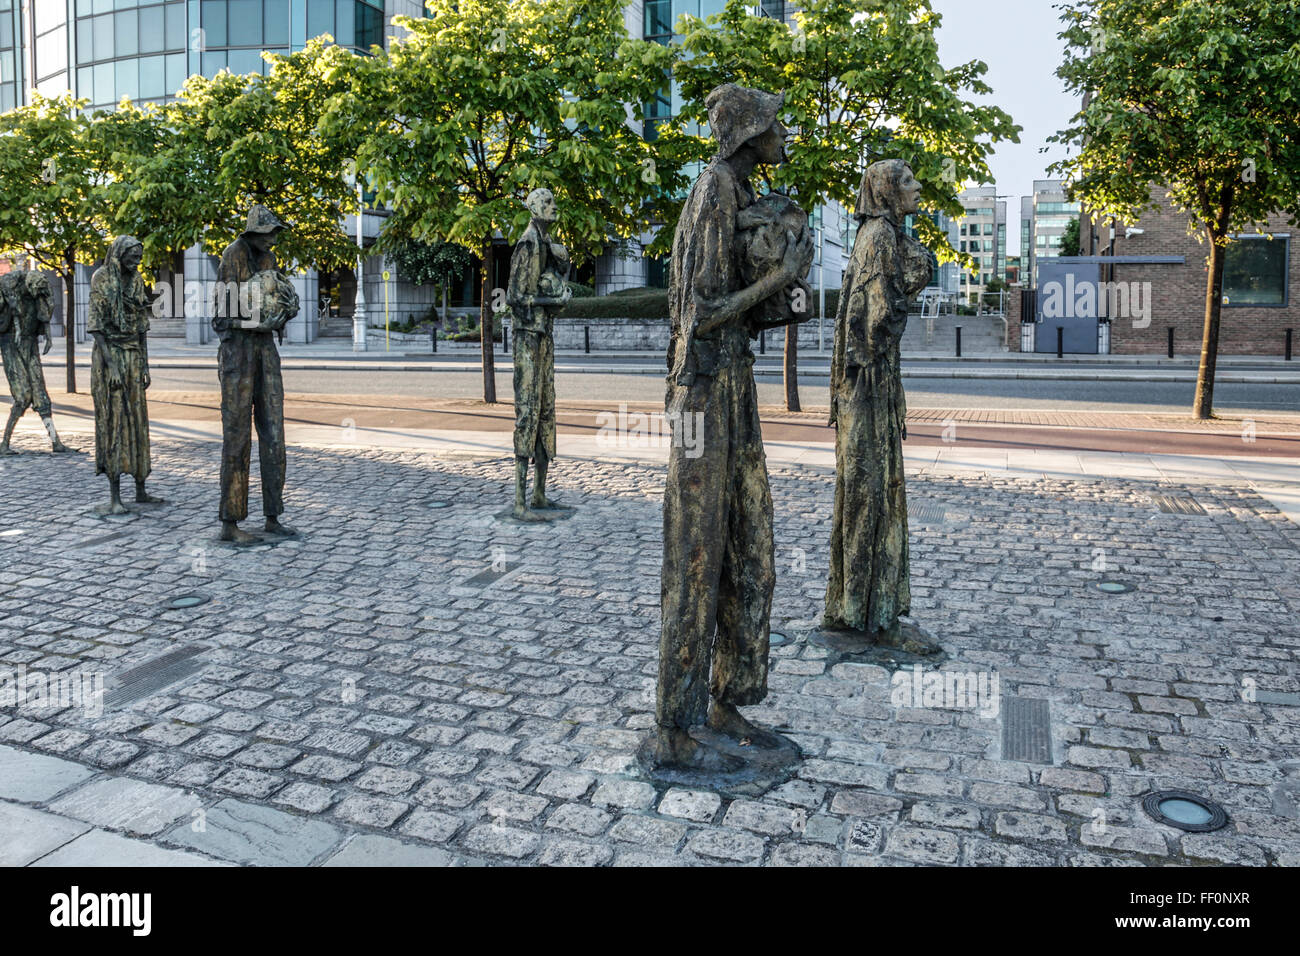 Part of the 'Famine' sculpture monument by Rowan Gillespie, on Custom House Quay in Dublin, remembering - Stock Image